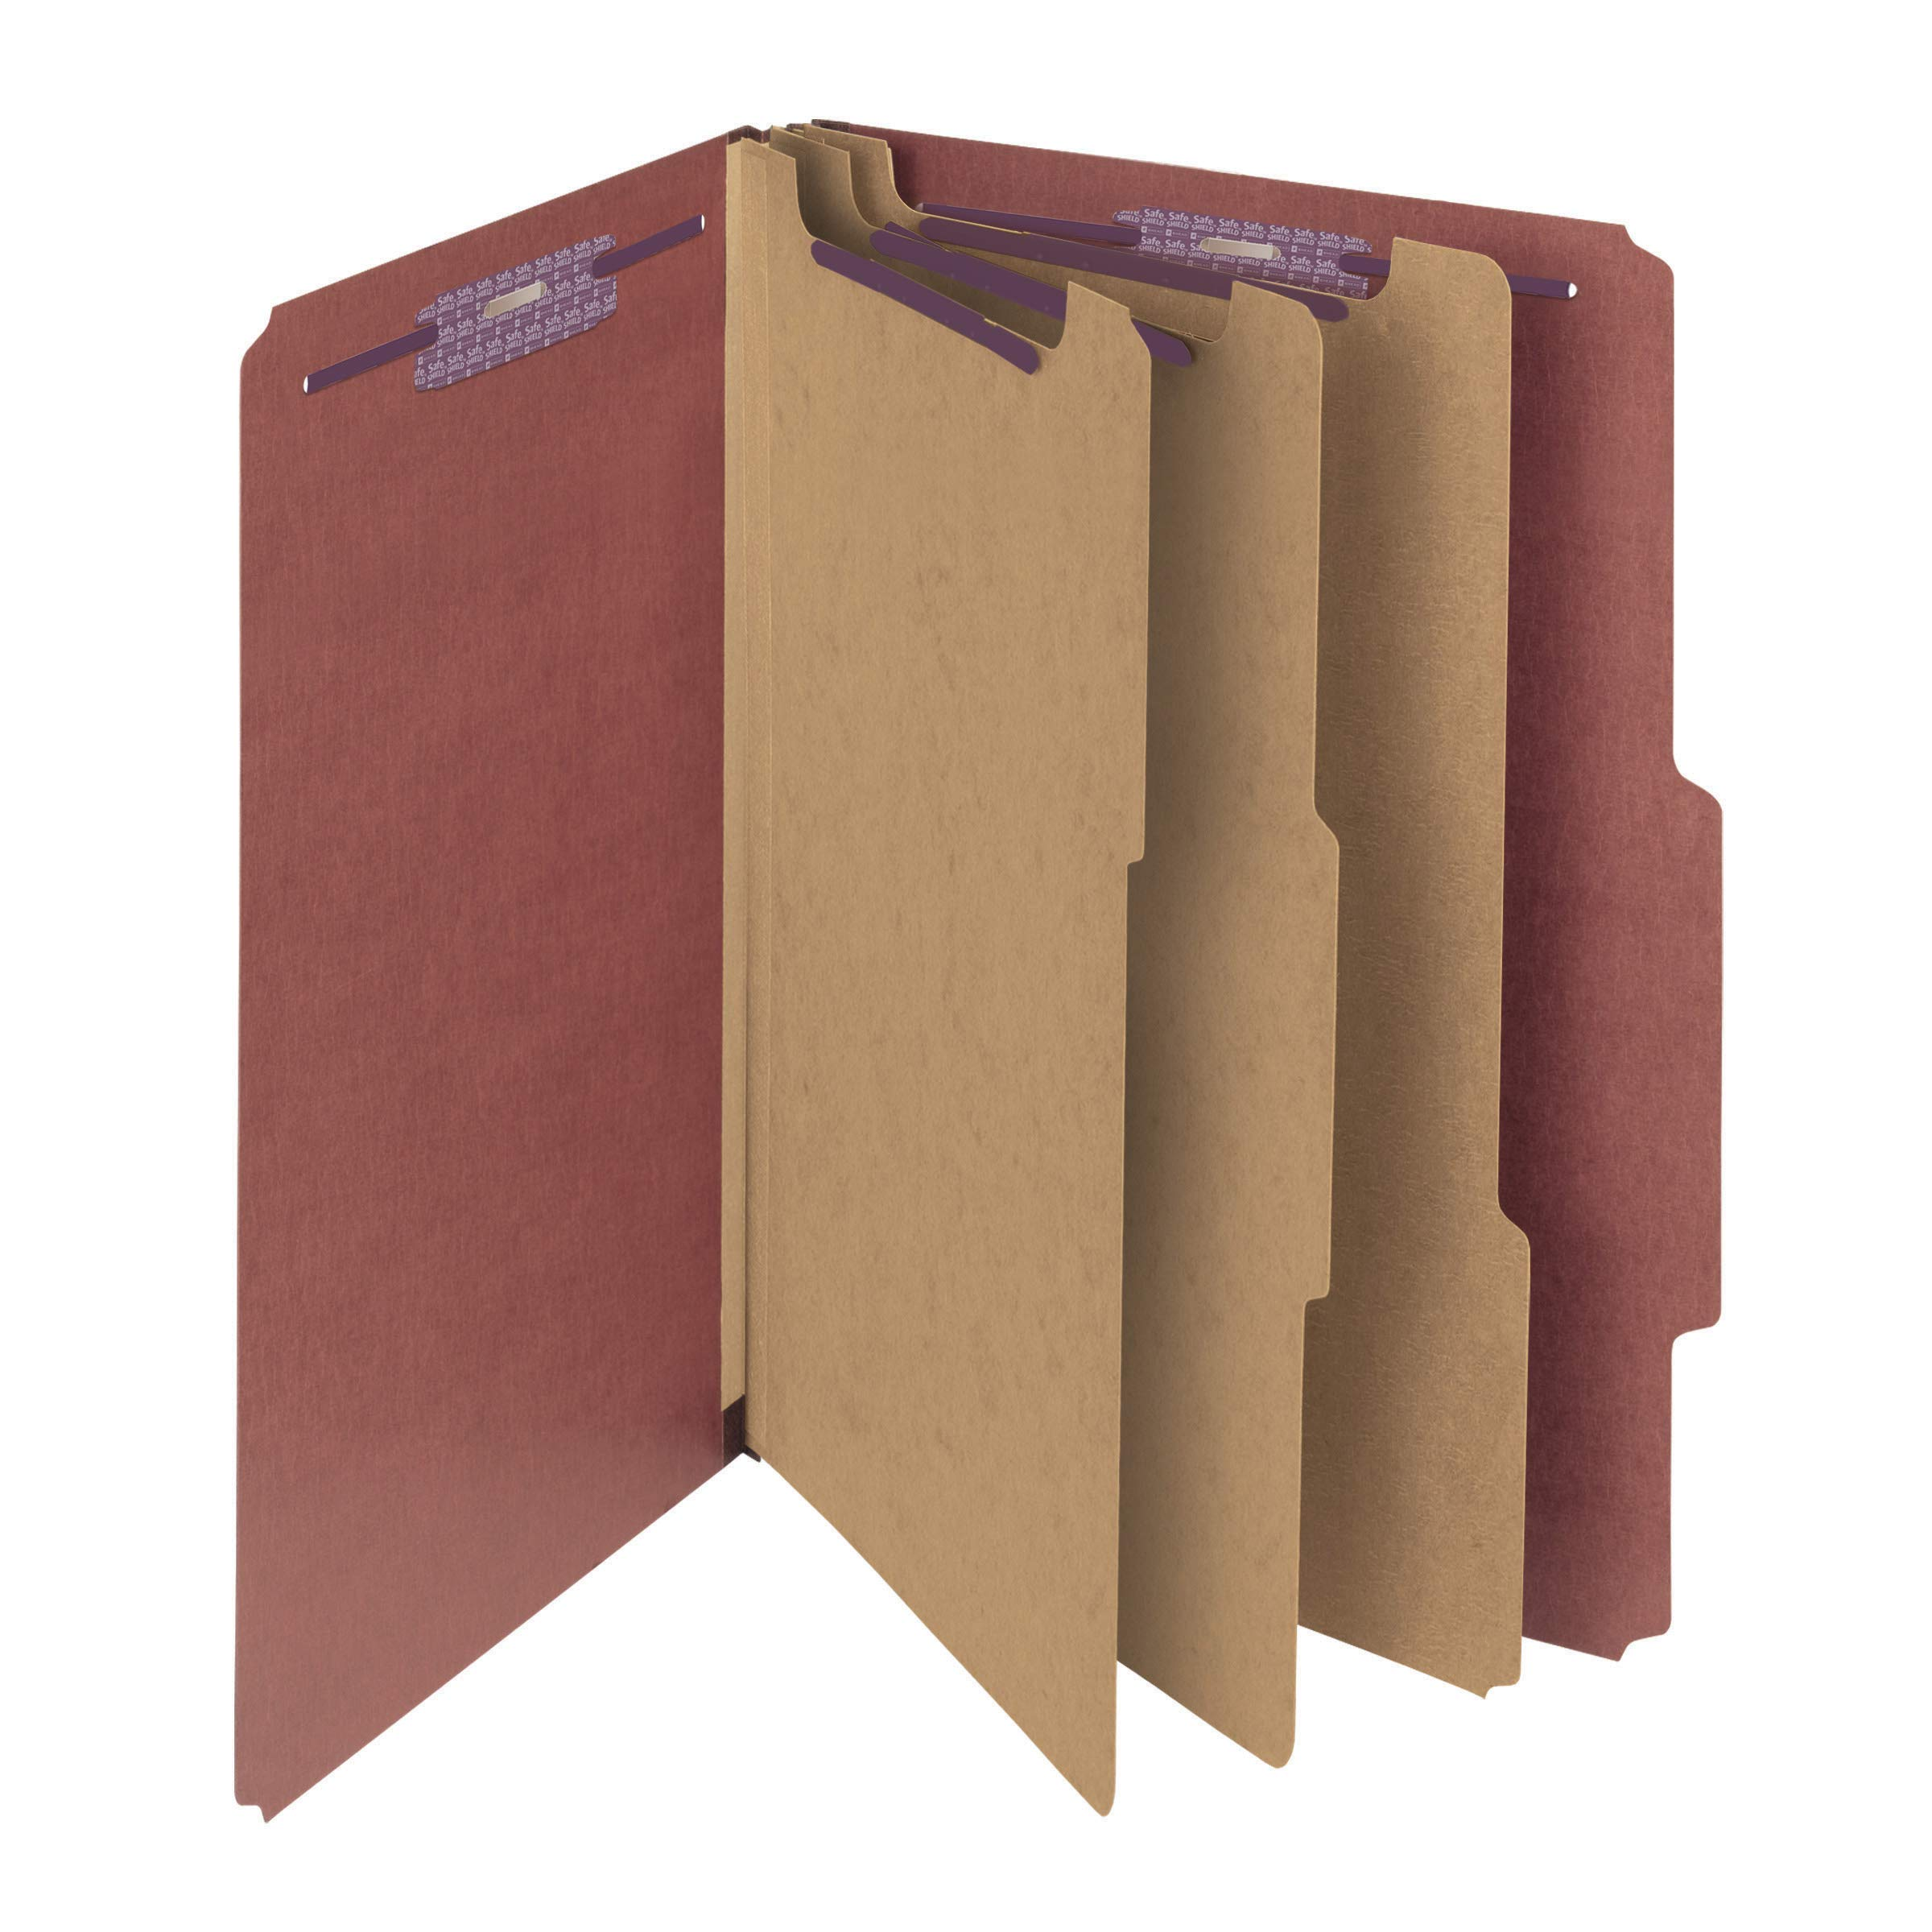 Smead Pressboard Classification File Folder with SafeSHIELD Fasteners, 3 Dividers, 3'' Expansion, Legal Size, Red, 10 per Box (19092) by Smead